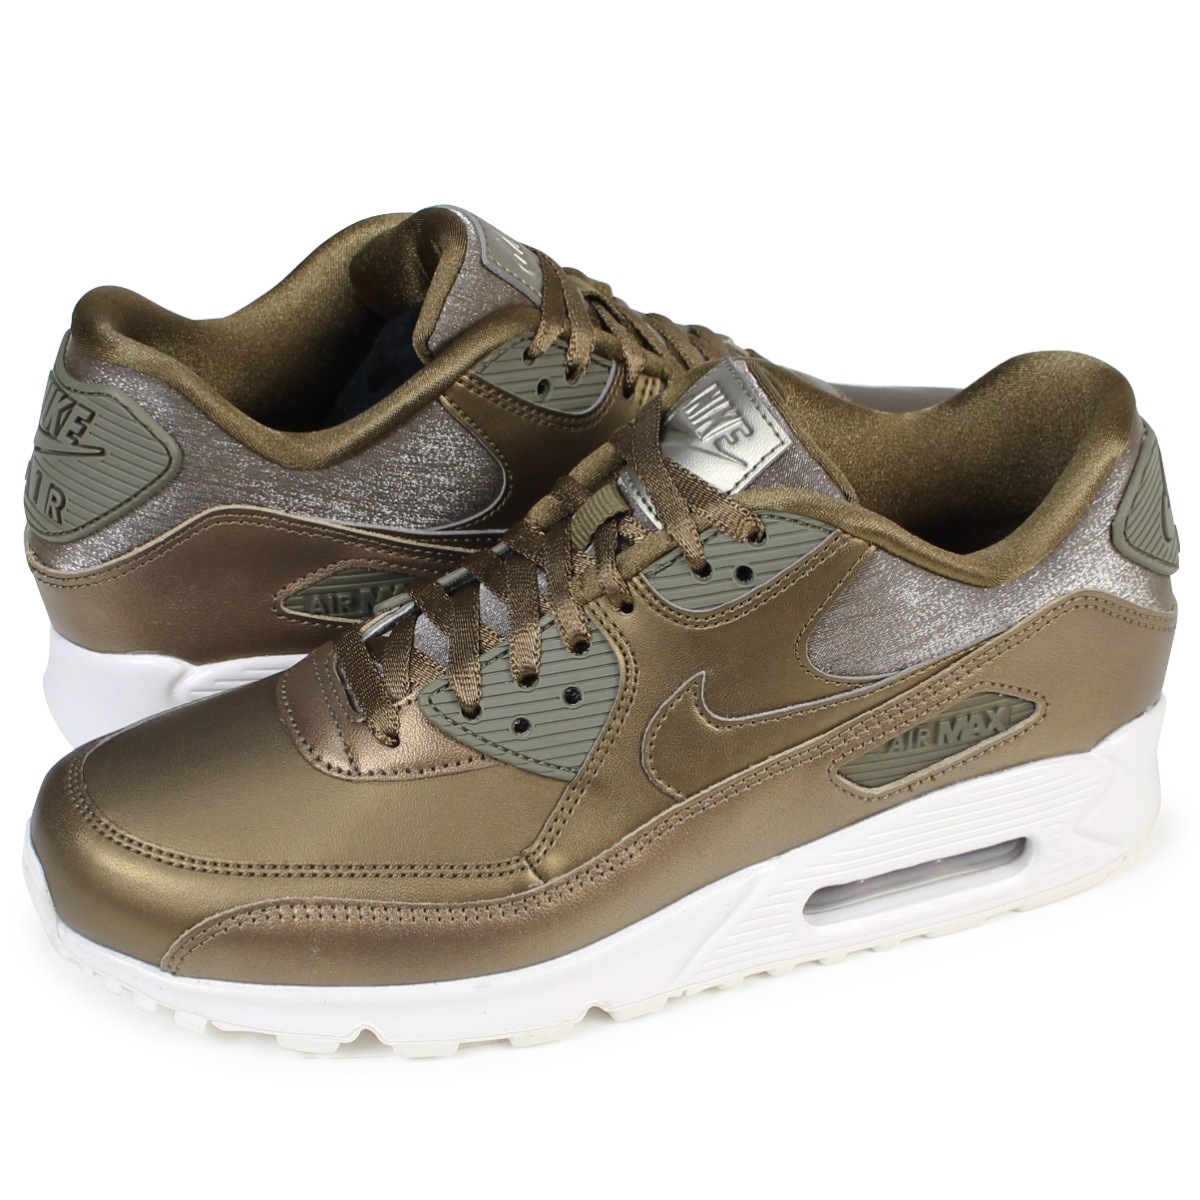 hot sale online 9aefa 0136c NIKE WMNS AIR MAX 90 PREMIUM Kie Ney AMAX 90 Lady's sneakers 896,497-901  shoes brown [1710]